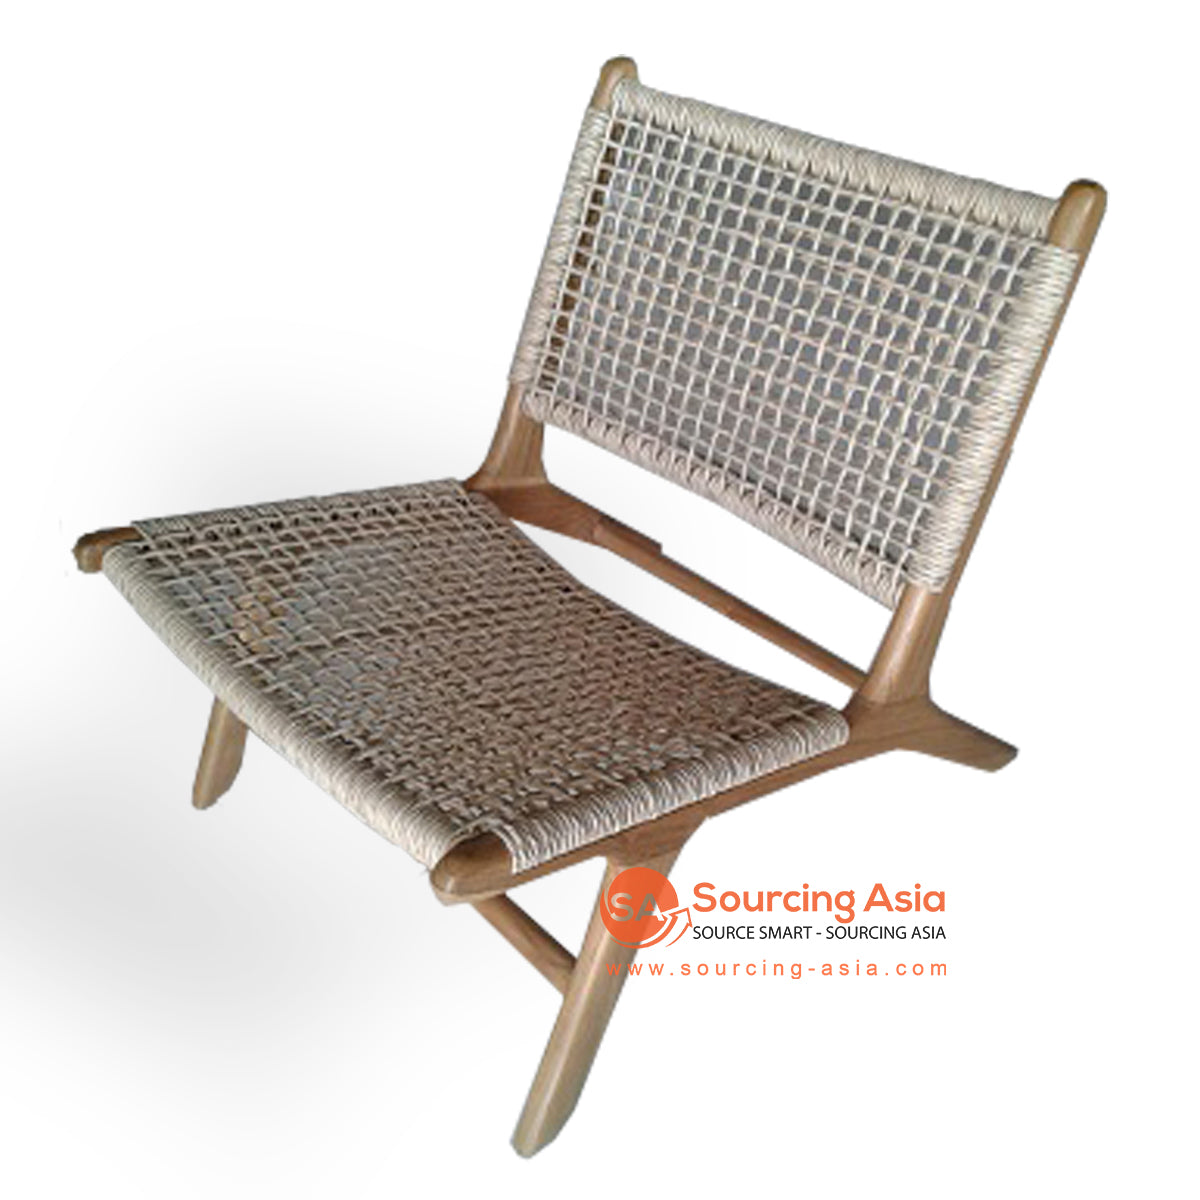 KUSJ078 LAZY CHAIR OPEN WEAVE